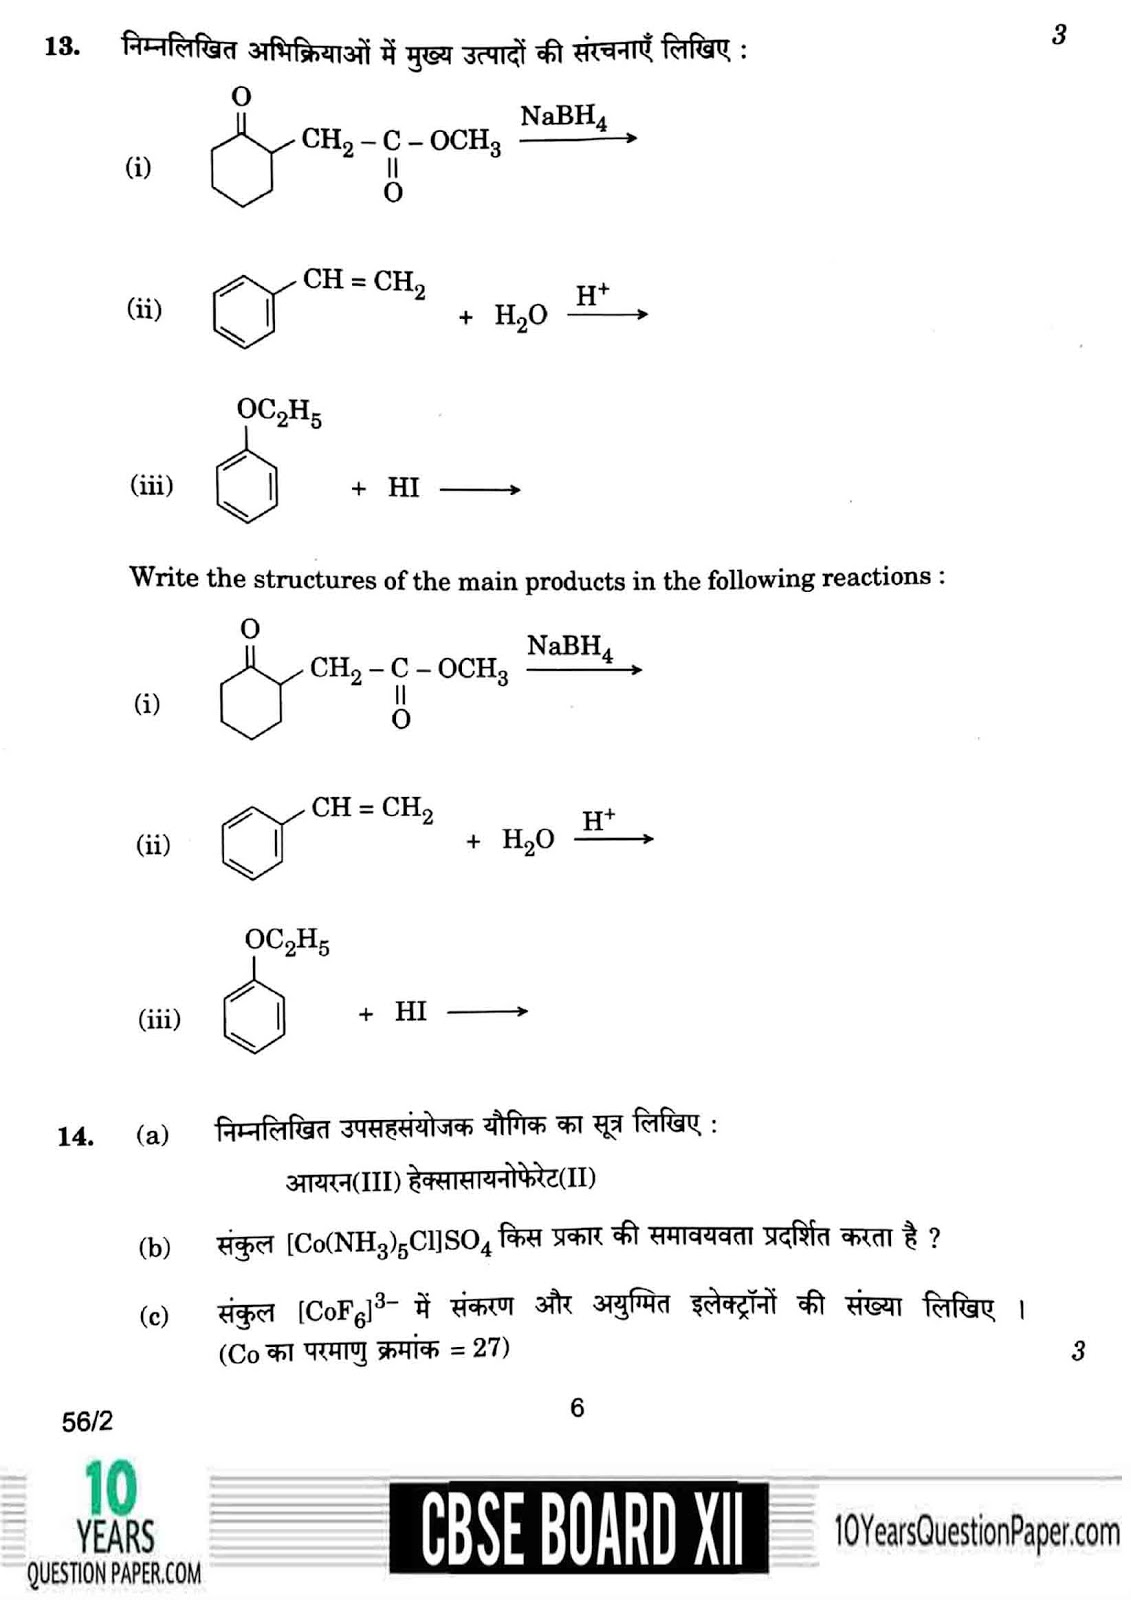 CBSE class 12th 2018 Chemistry previous year question paper